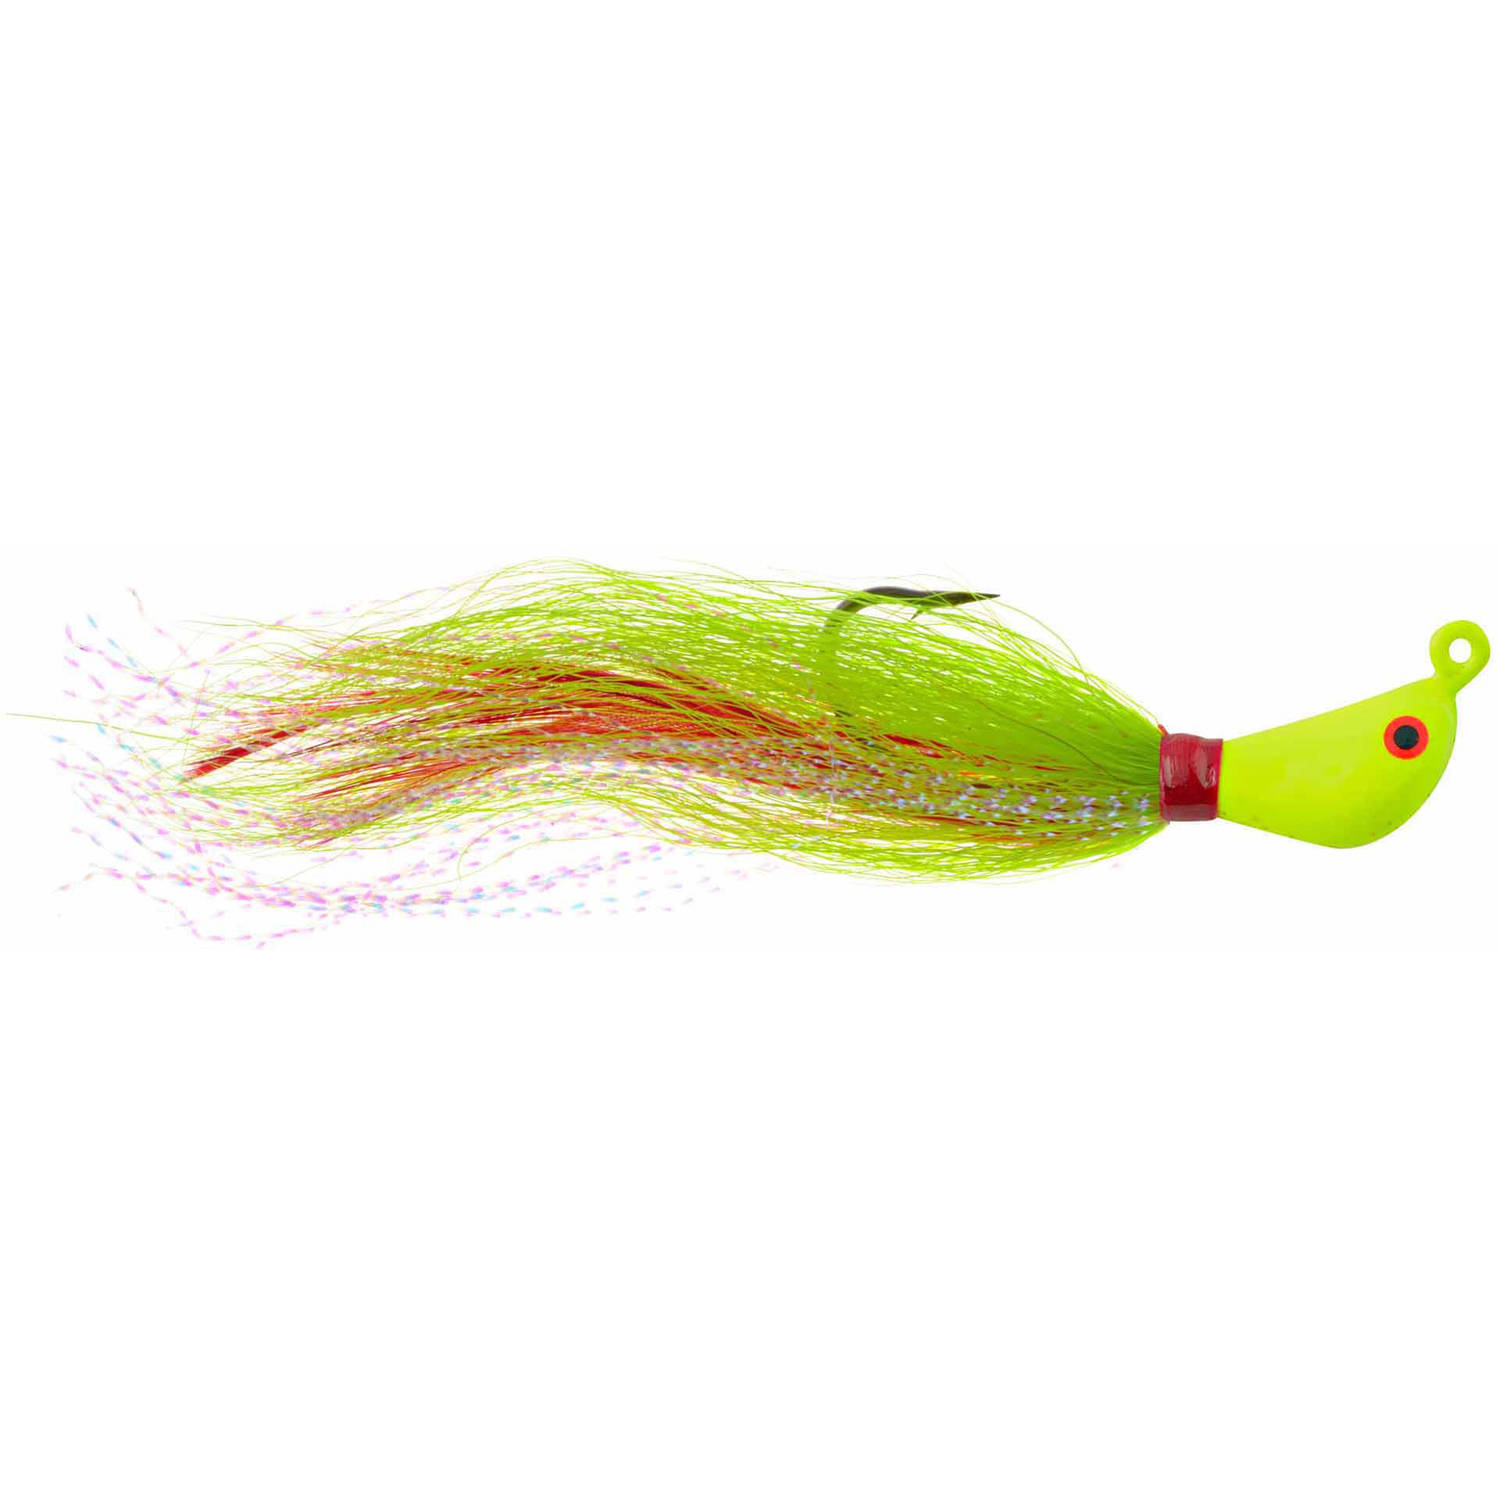 Hurricane Super Bucktails 1 oz by Hurricane